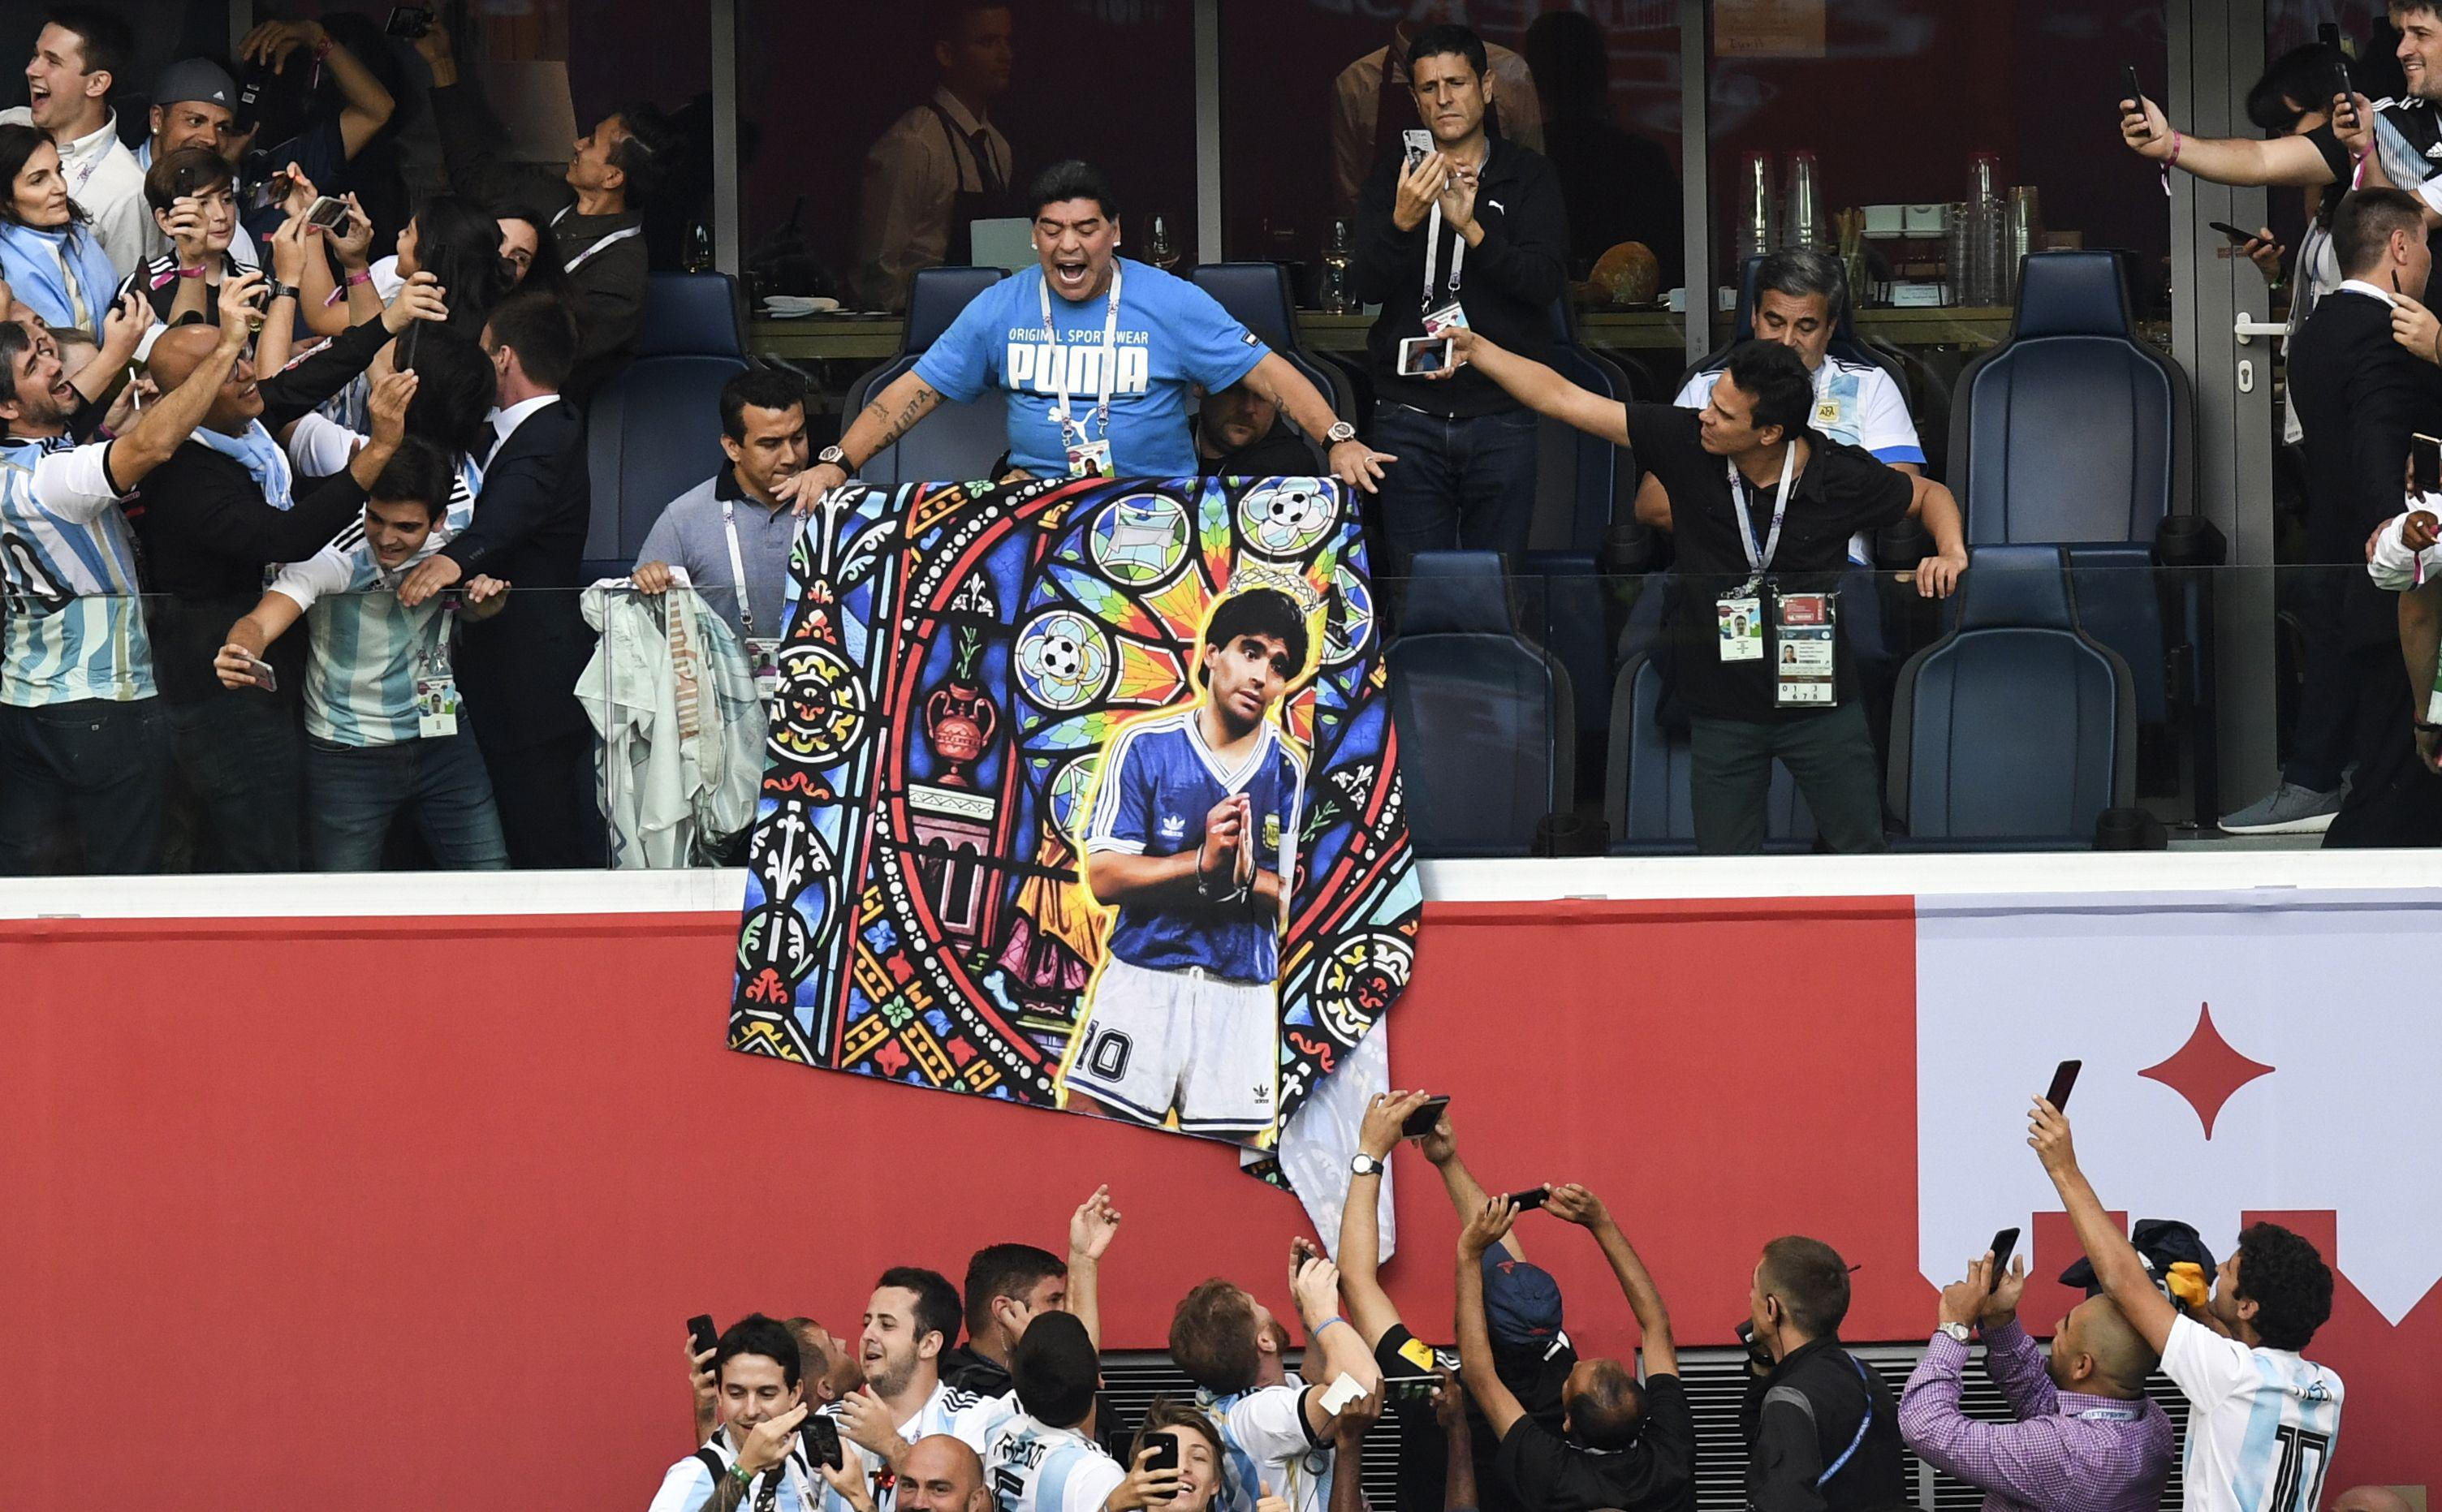 Retired Argentina forward Diego Maradona carries a poster bearing his portrait ahead of the Russia 2018 World Cup Group D football match between Nigeria and Argentina at the Saint Petersburg Stadium in Saint Petersburg on June 26, 2018. (Photo by Paul ELLIS / AFP) / RESTRICTED TO EDITORIAL USE - NO MOBILE PUSH ALERTS/DOWNLOADS        (Photo credit should read PAUL ELLIS/AFP/Getty Images)